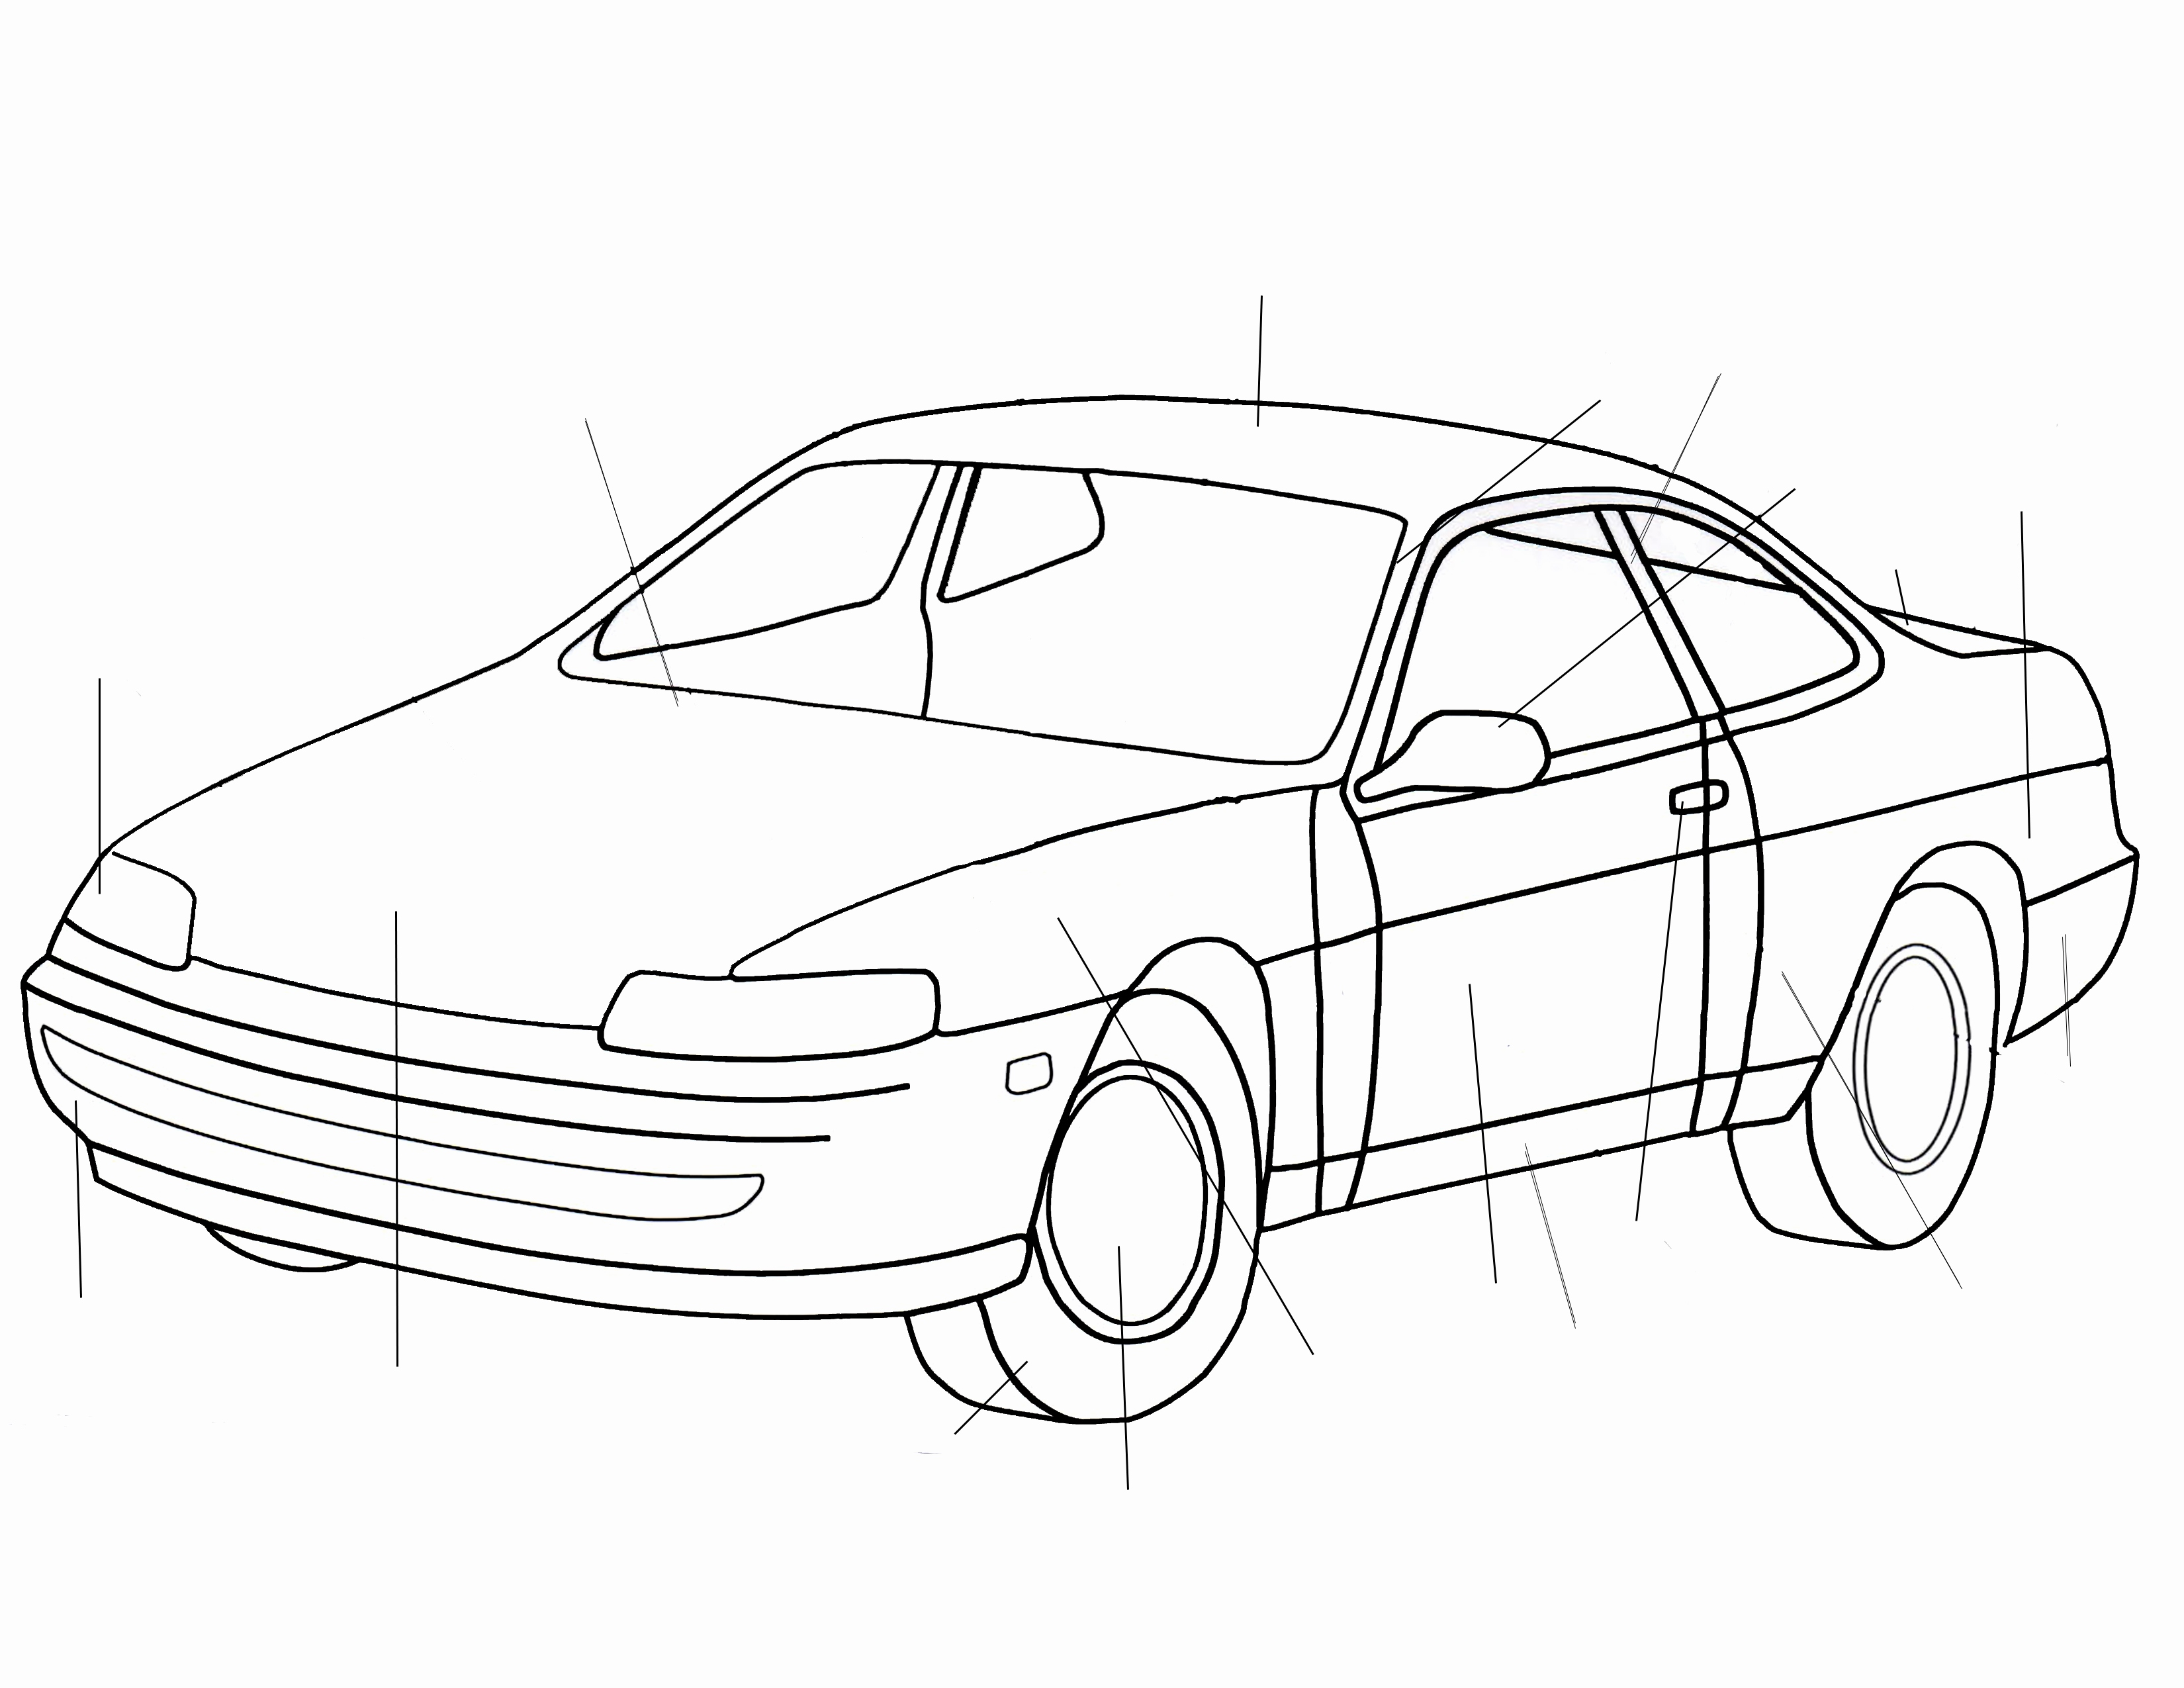 3300x2550 Simple Car Images Awesome Wallpapers Cars In Pencil Sketch Simple